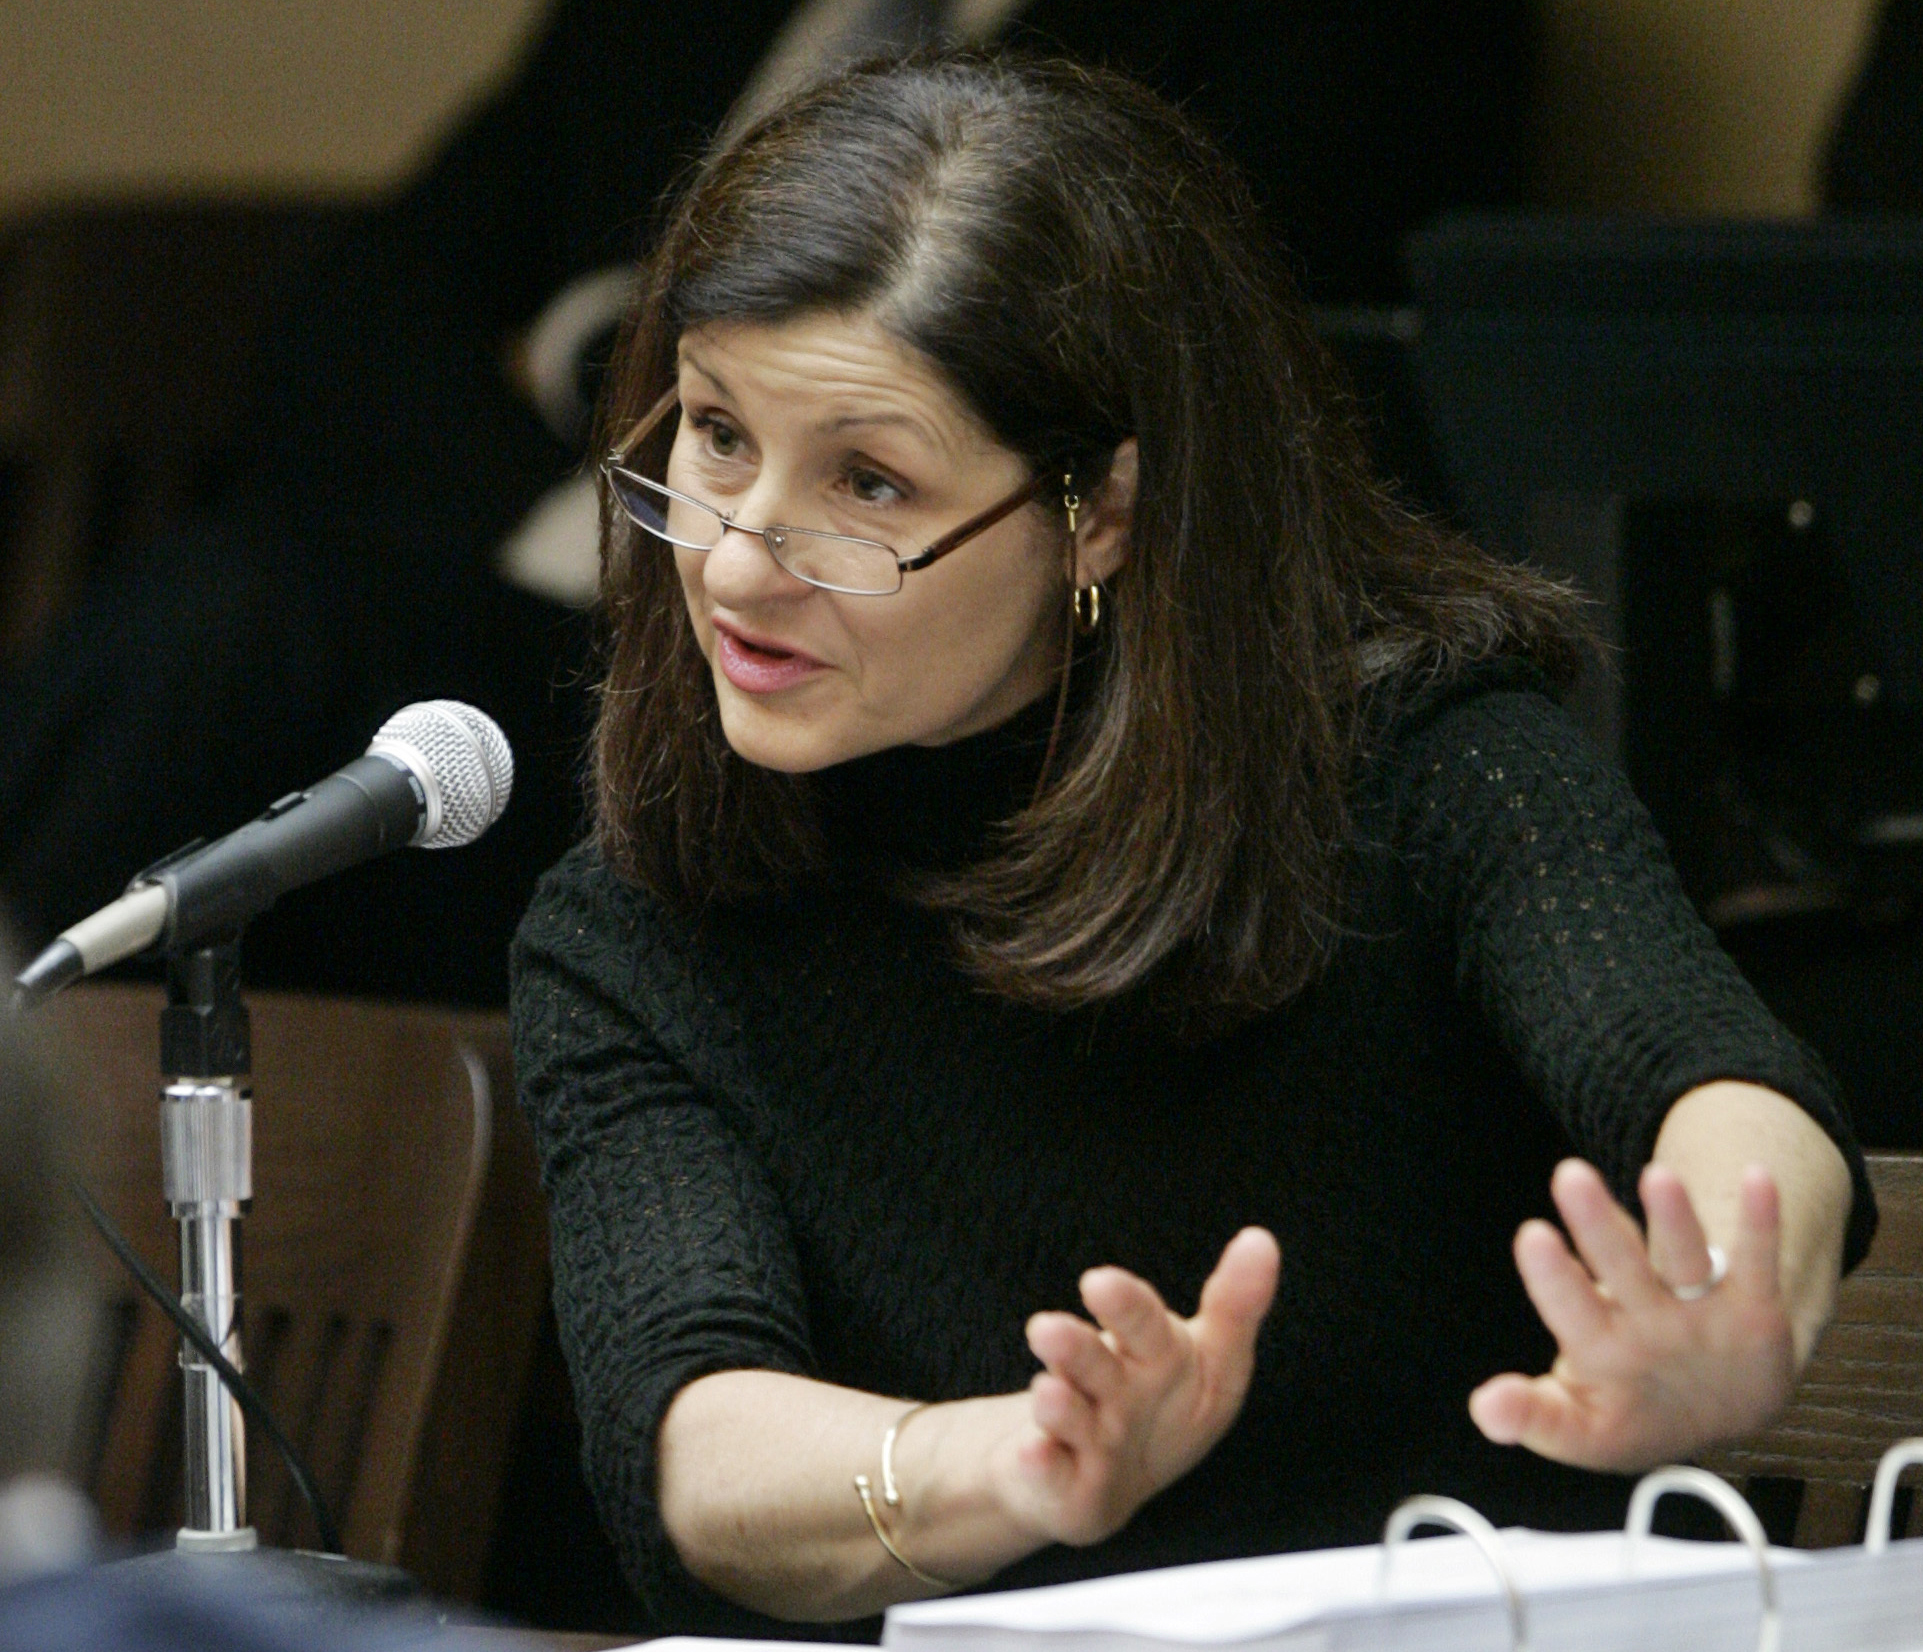 FILE - In this May 18, 2007, file photo, Christiane Ayotte, director of the Montreal WADA accredited laboratory, testifies during an arbitration hearing on the doping allegations against 2006 Tour de France champion Floyd Landis at Pepperdine University i